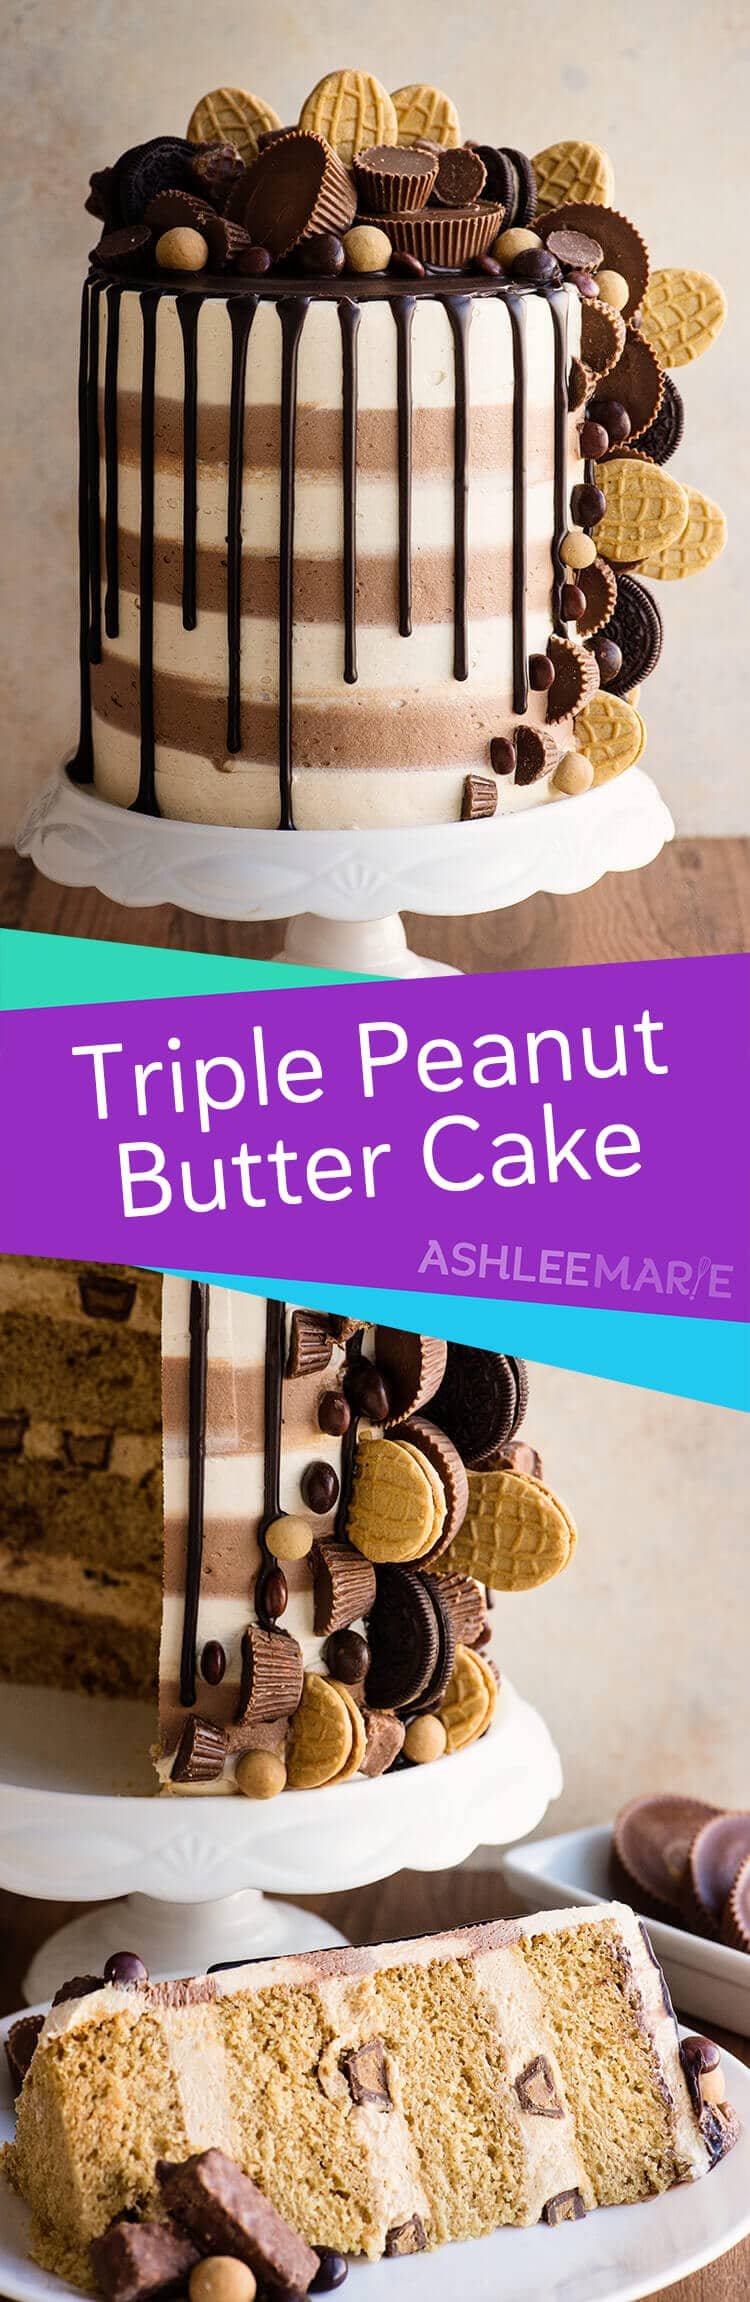 triple peanut butter cake recipes and video